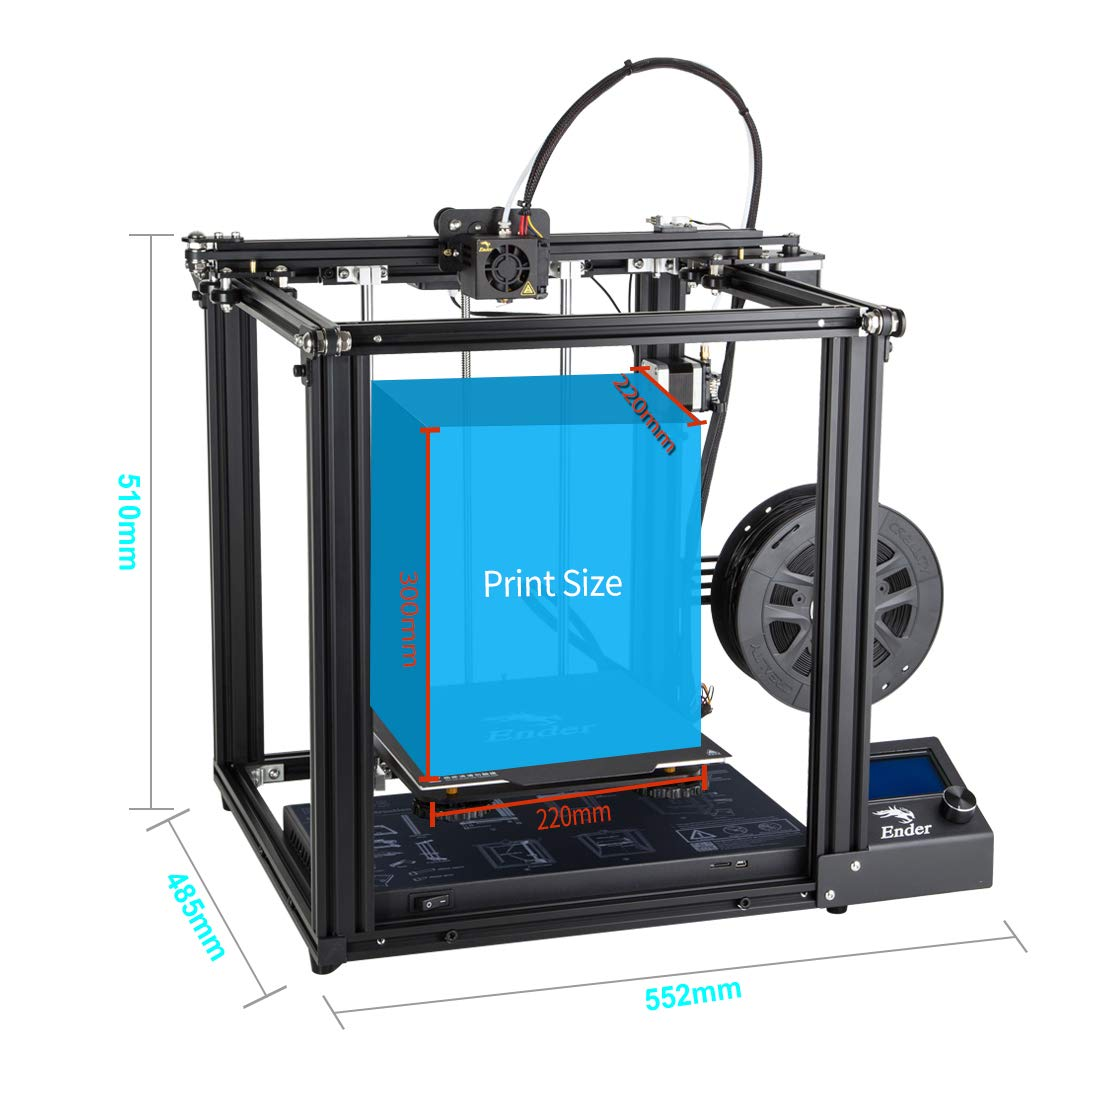 Creality Ender 5 3D Printer with Resume Printing Function Brand Power Supply and Update with Metail Extruder Frame